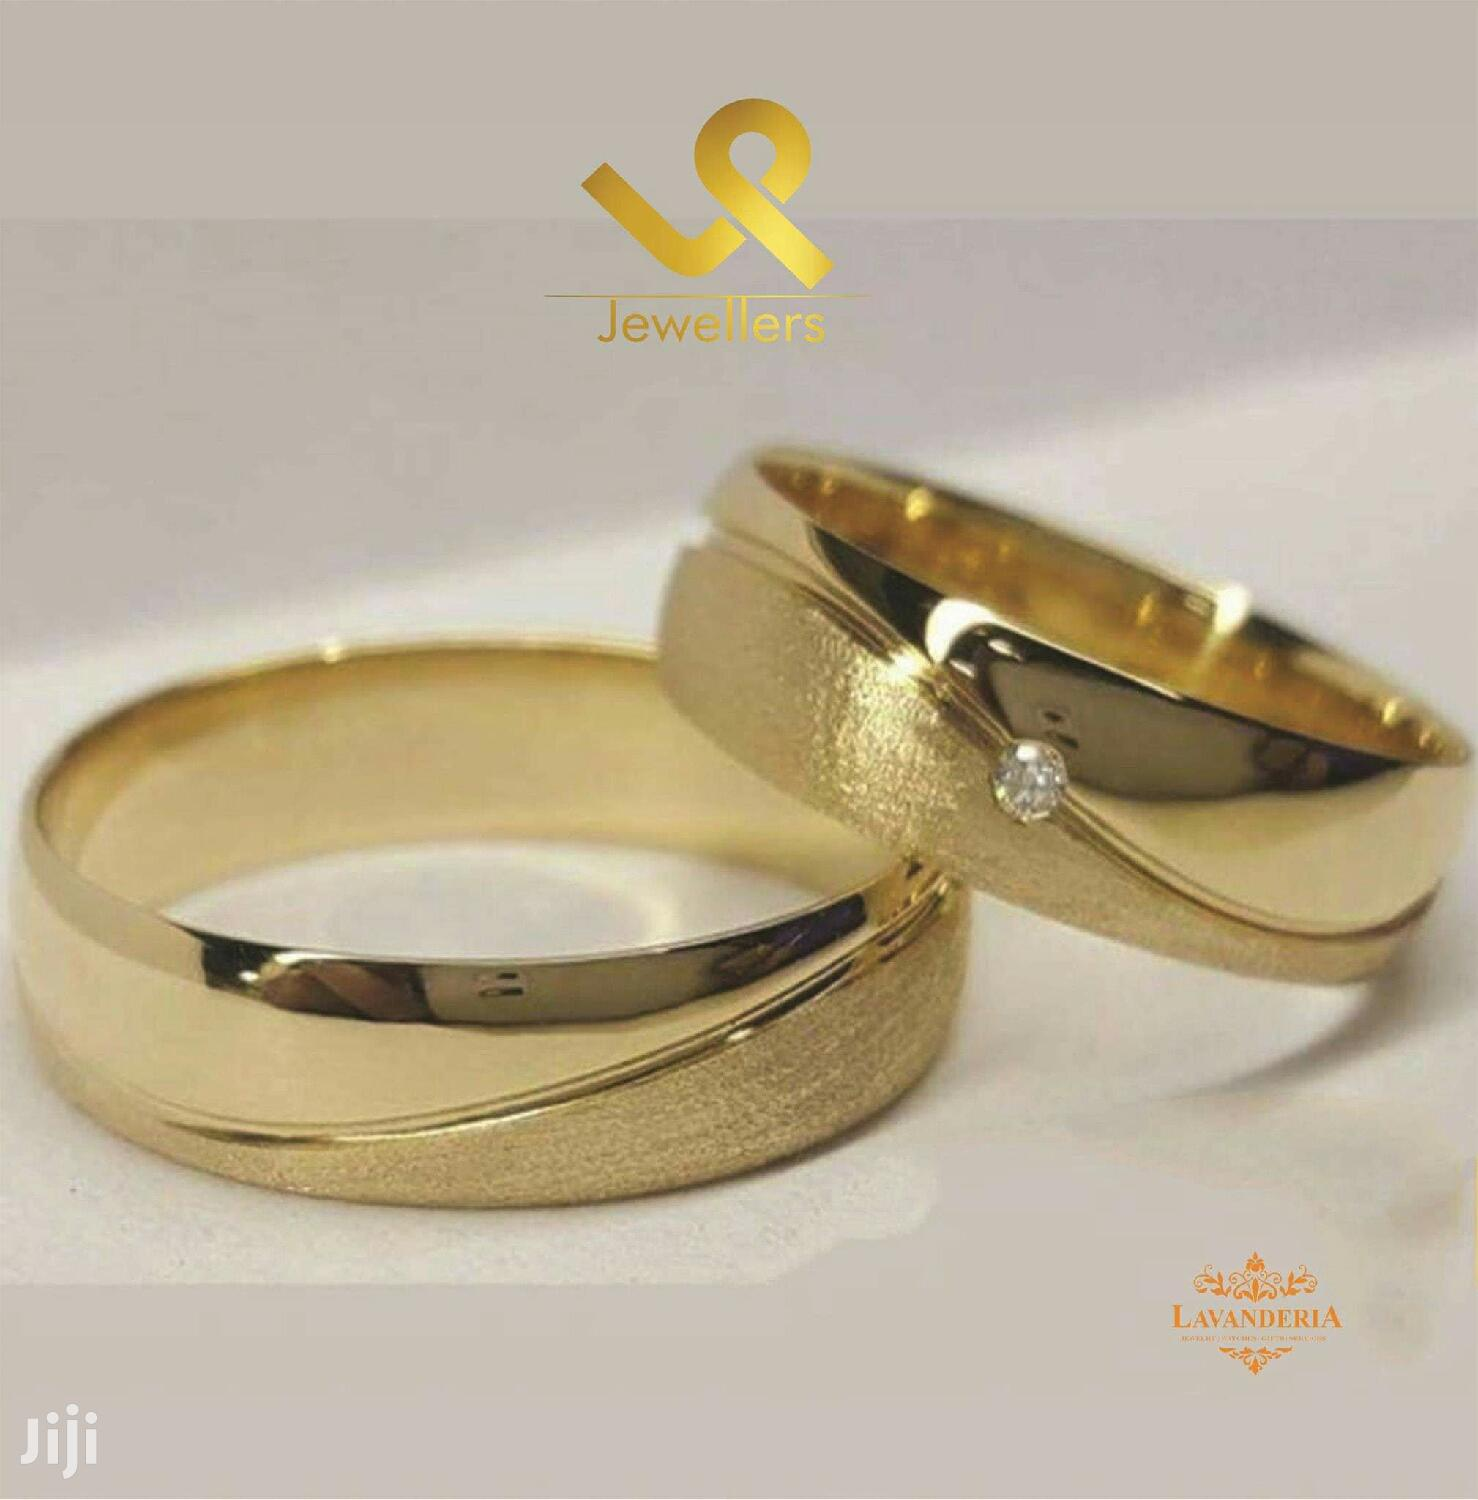 Custom Made 18k Gold Couple Matching Wedding Band Rings Laser In Nairobi Central Wedding Wear Accessories L And P Jiji Co Ke